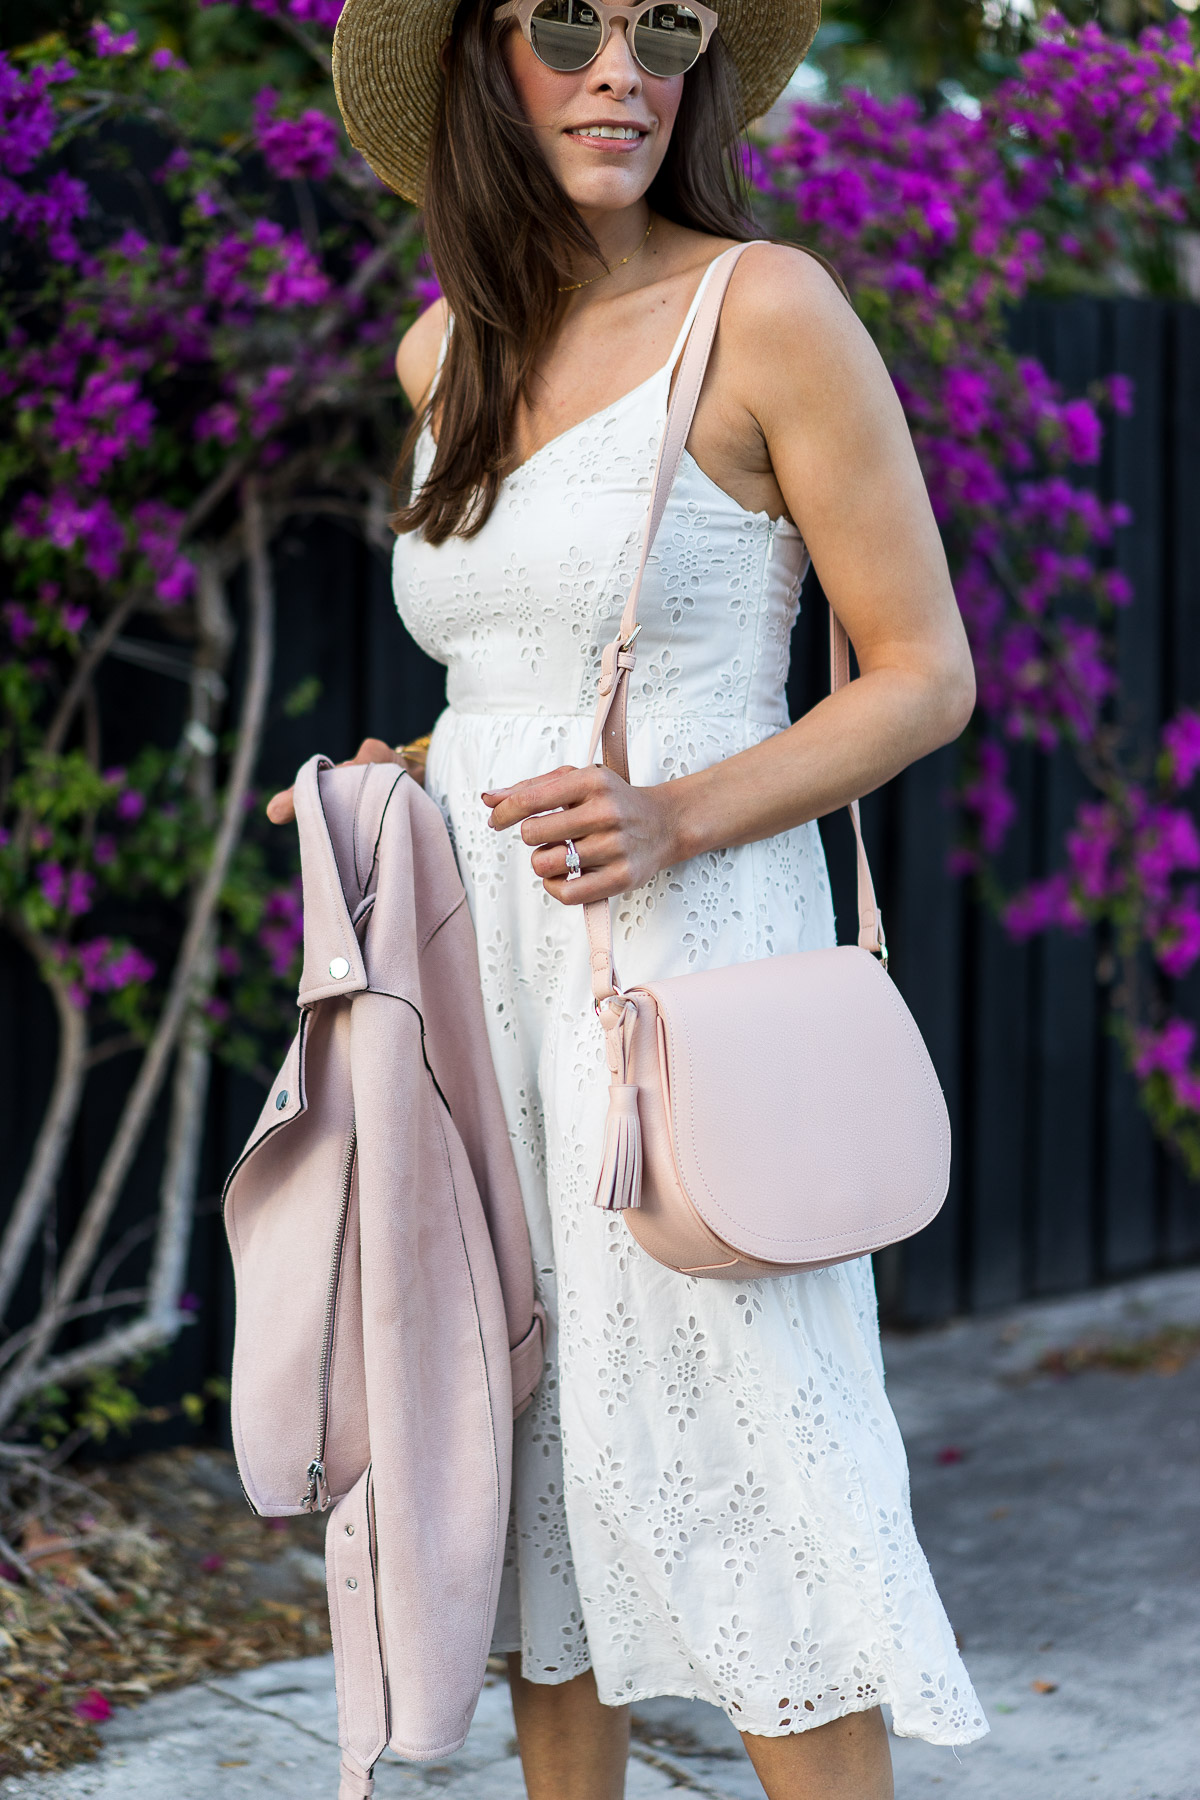 Old Navy midi dress eyelet details and blush saddle bag are perfect items to #SayHi to Spring as shown by blogger Amanda from AGlamLifestyle